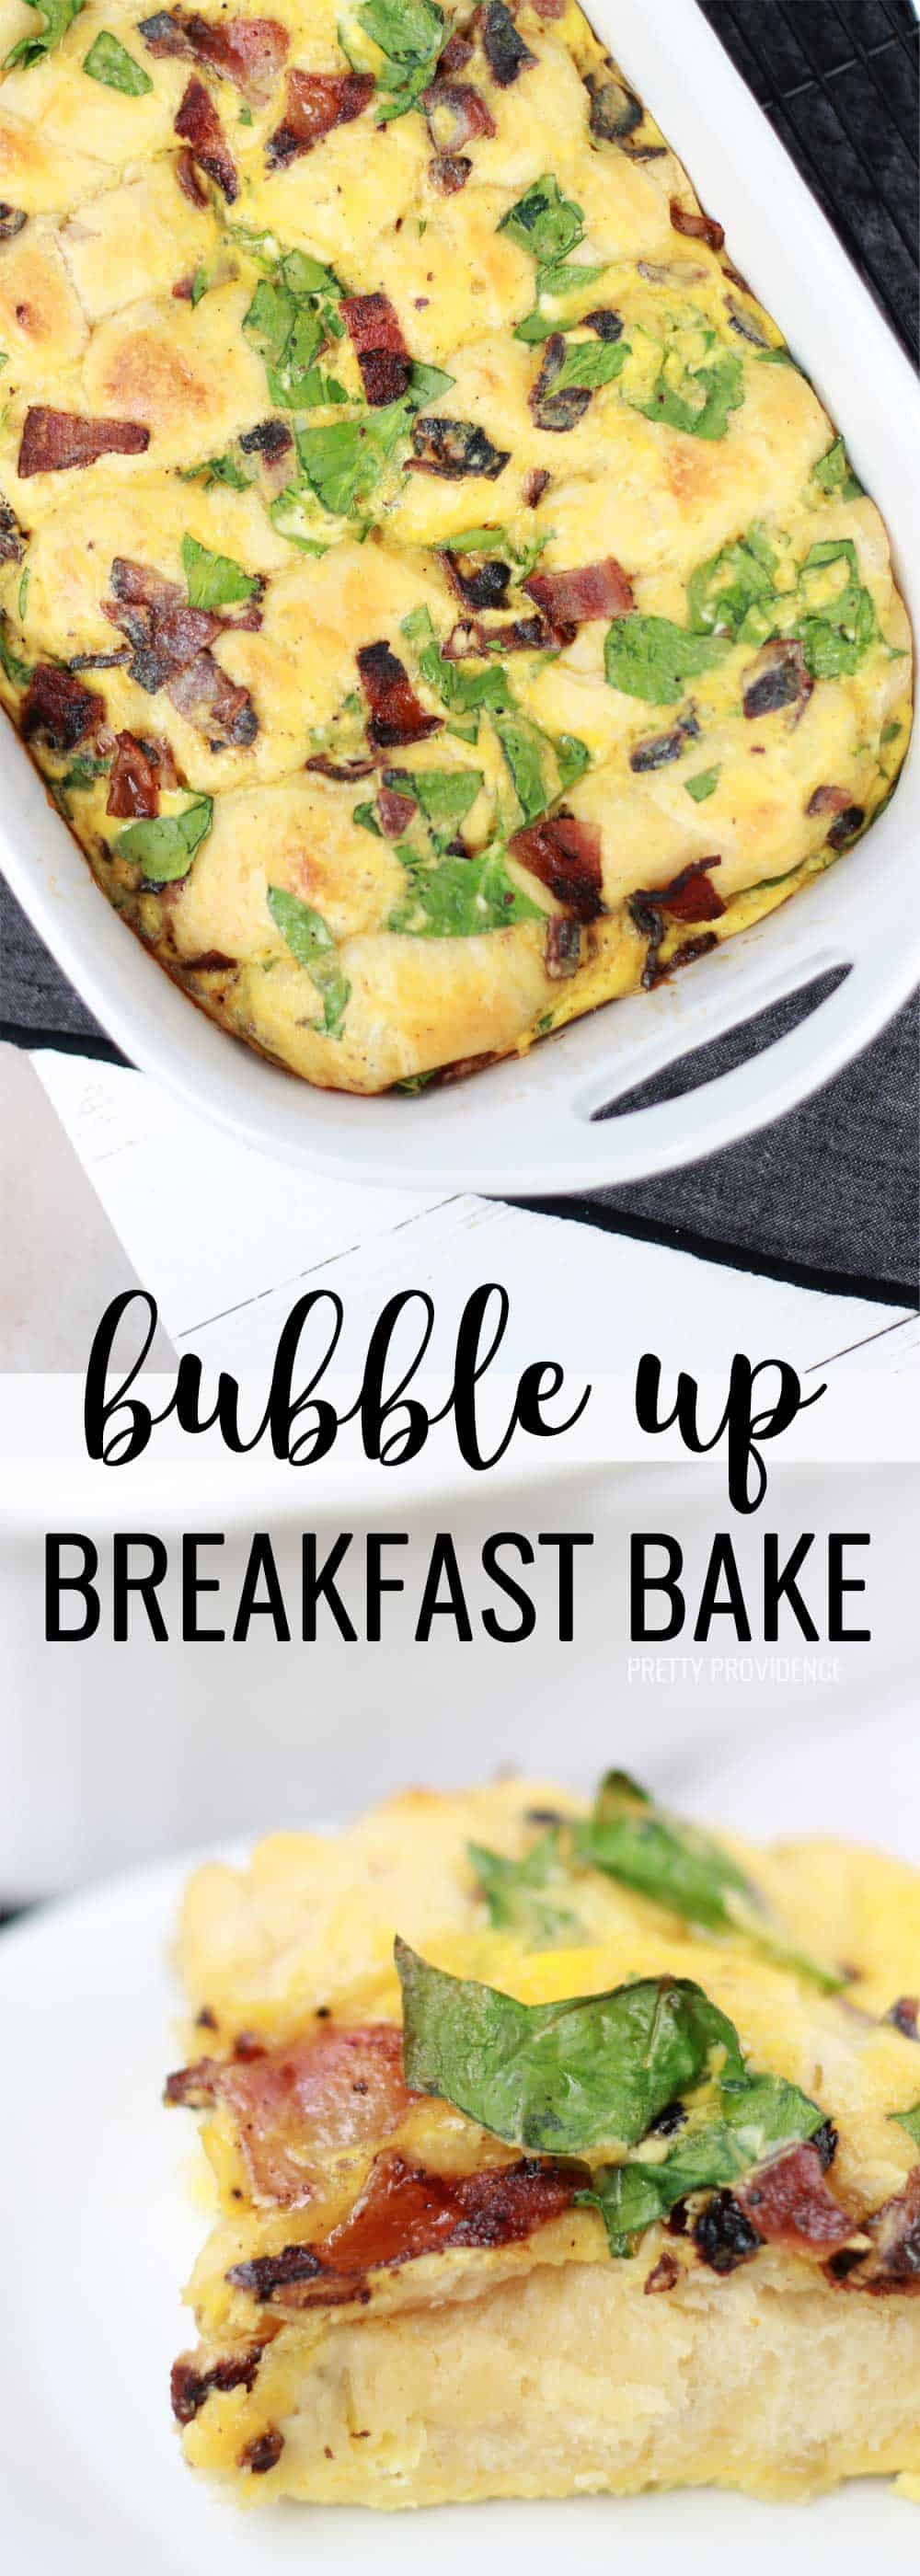 My family LOVES this bubble up breakfast bake! It's great for breakfast, brunch or for a quick weeknight dinner!